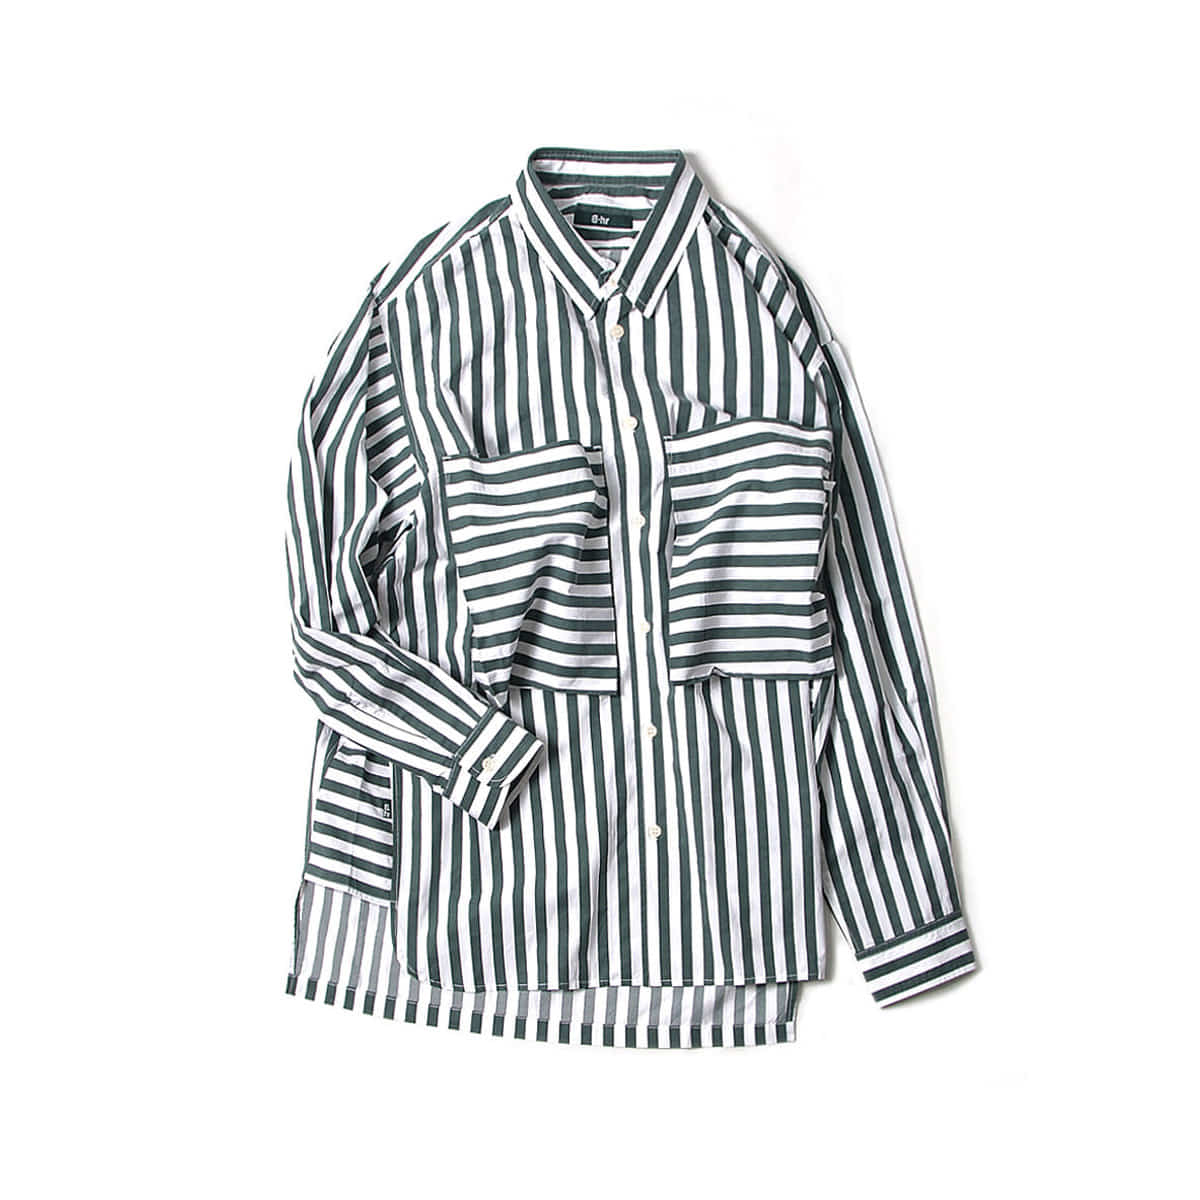 [BEHEAVYER] POCKET TUNIM SHIRT 'GREEN STRIPE'